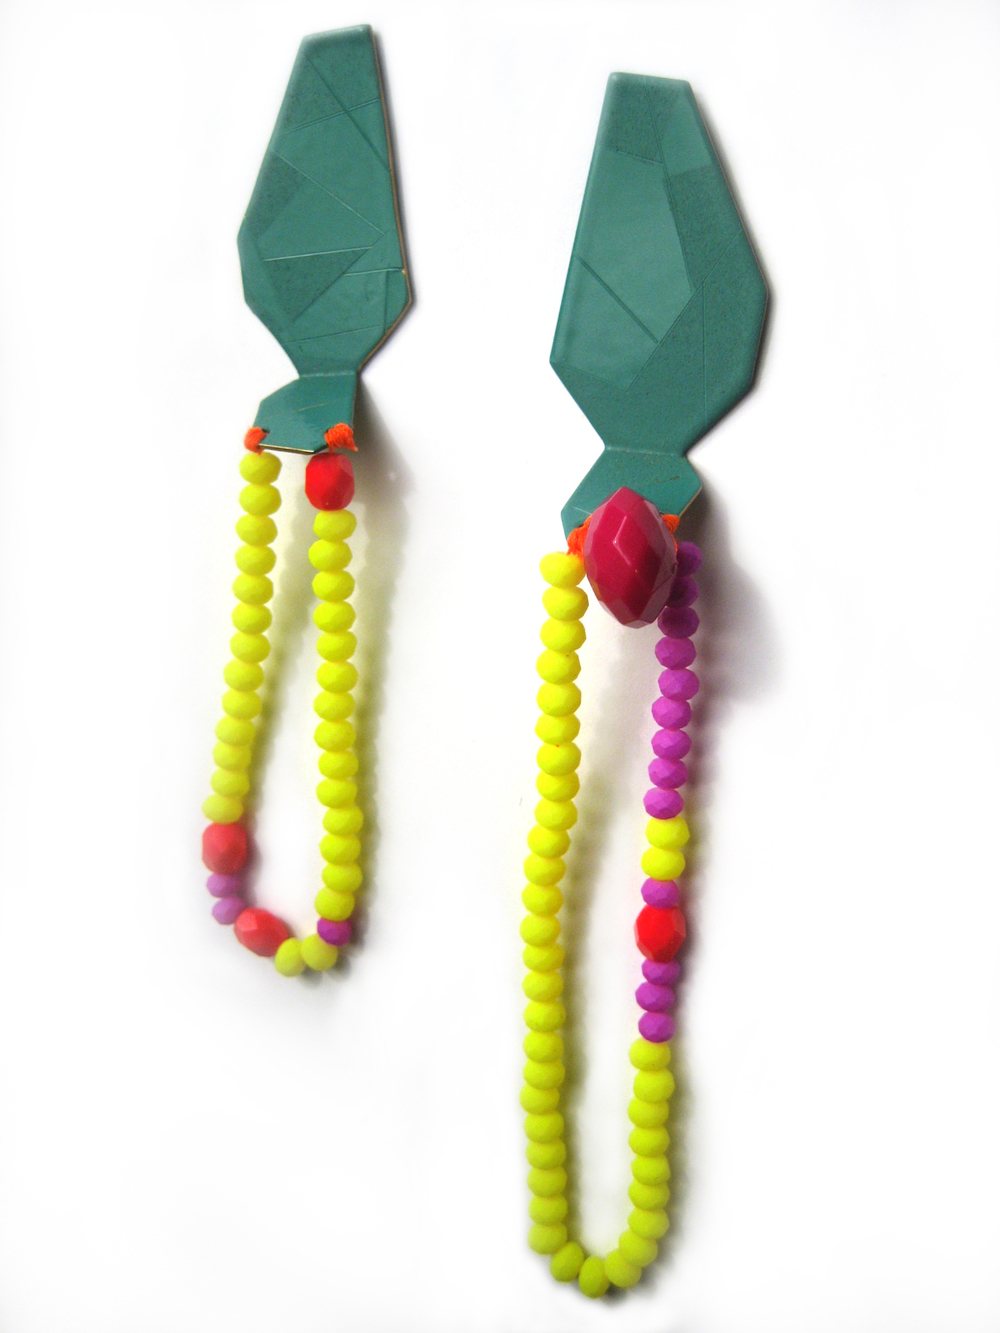 E6 Voegele, Stephanie teal geometric shape with neon yellow, pink, red beads.jpg